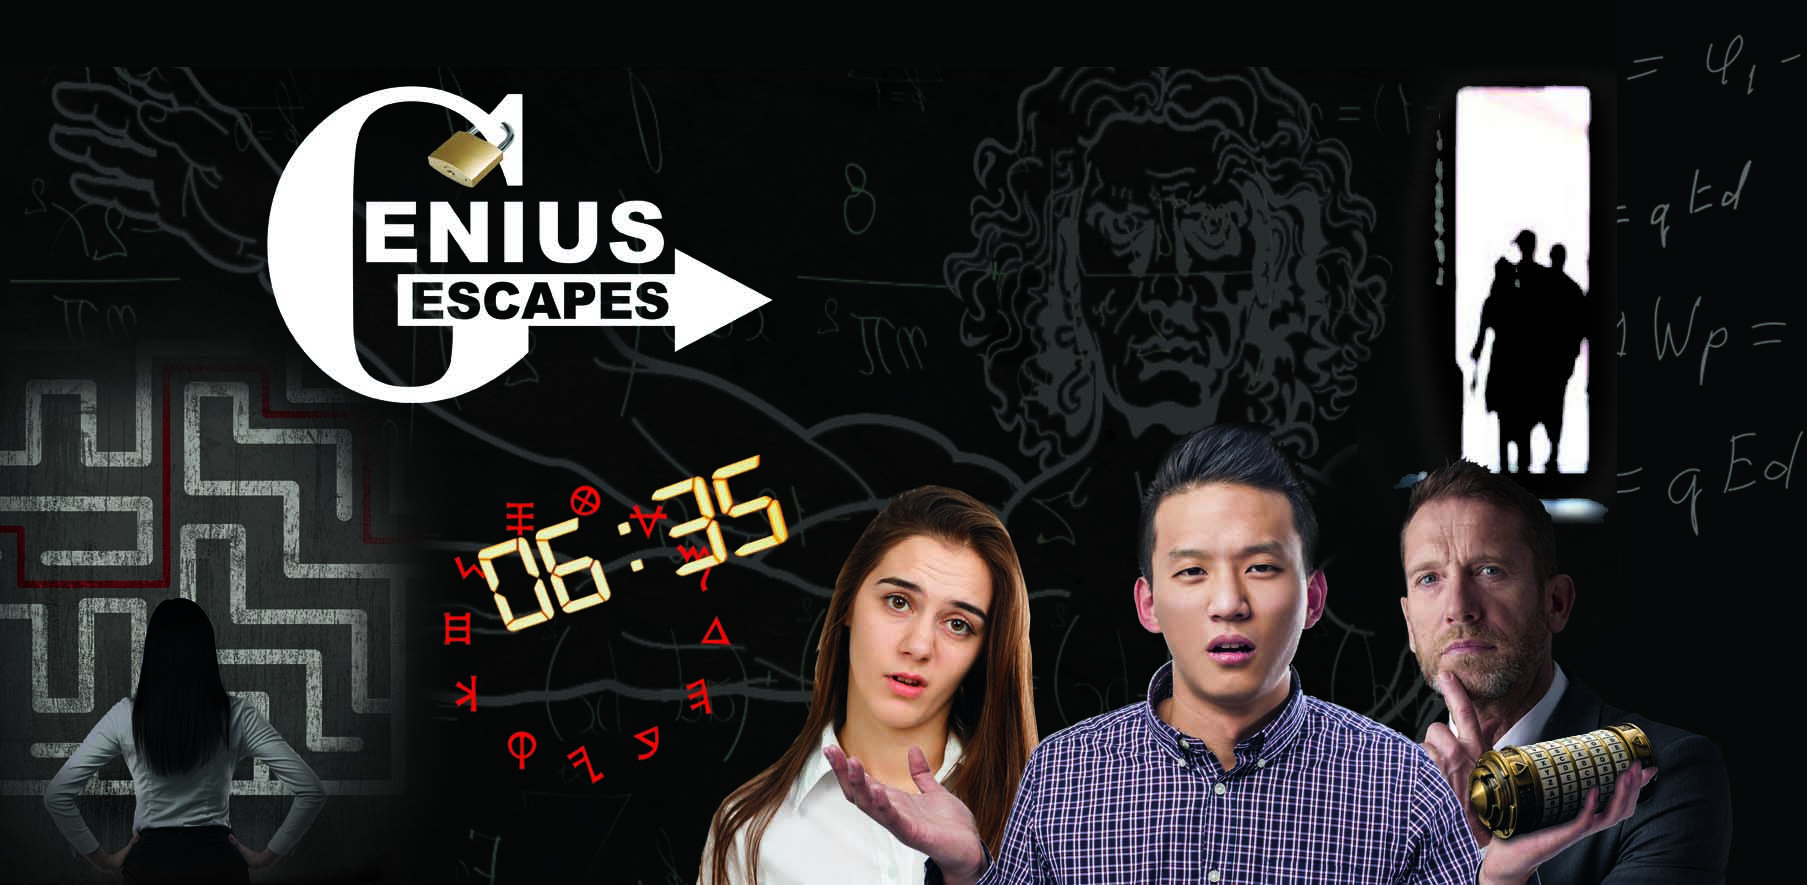 Genius Escapes